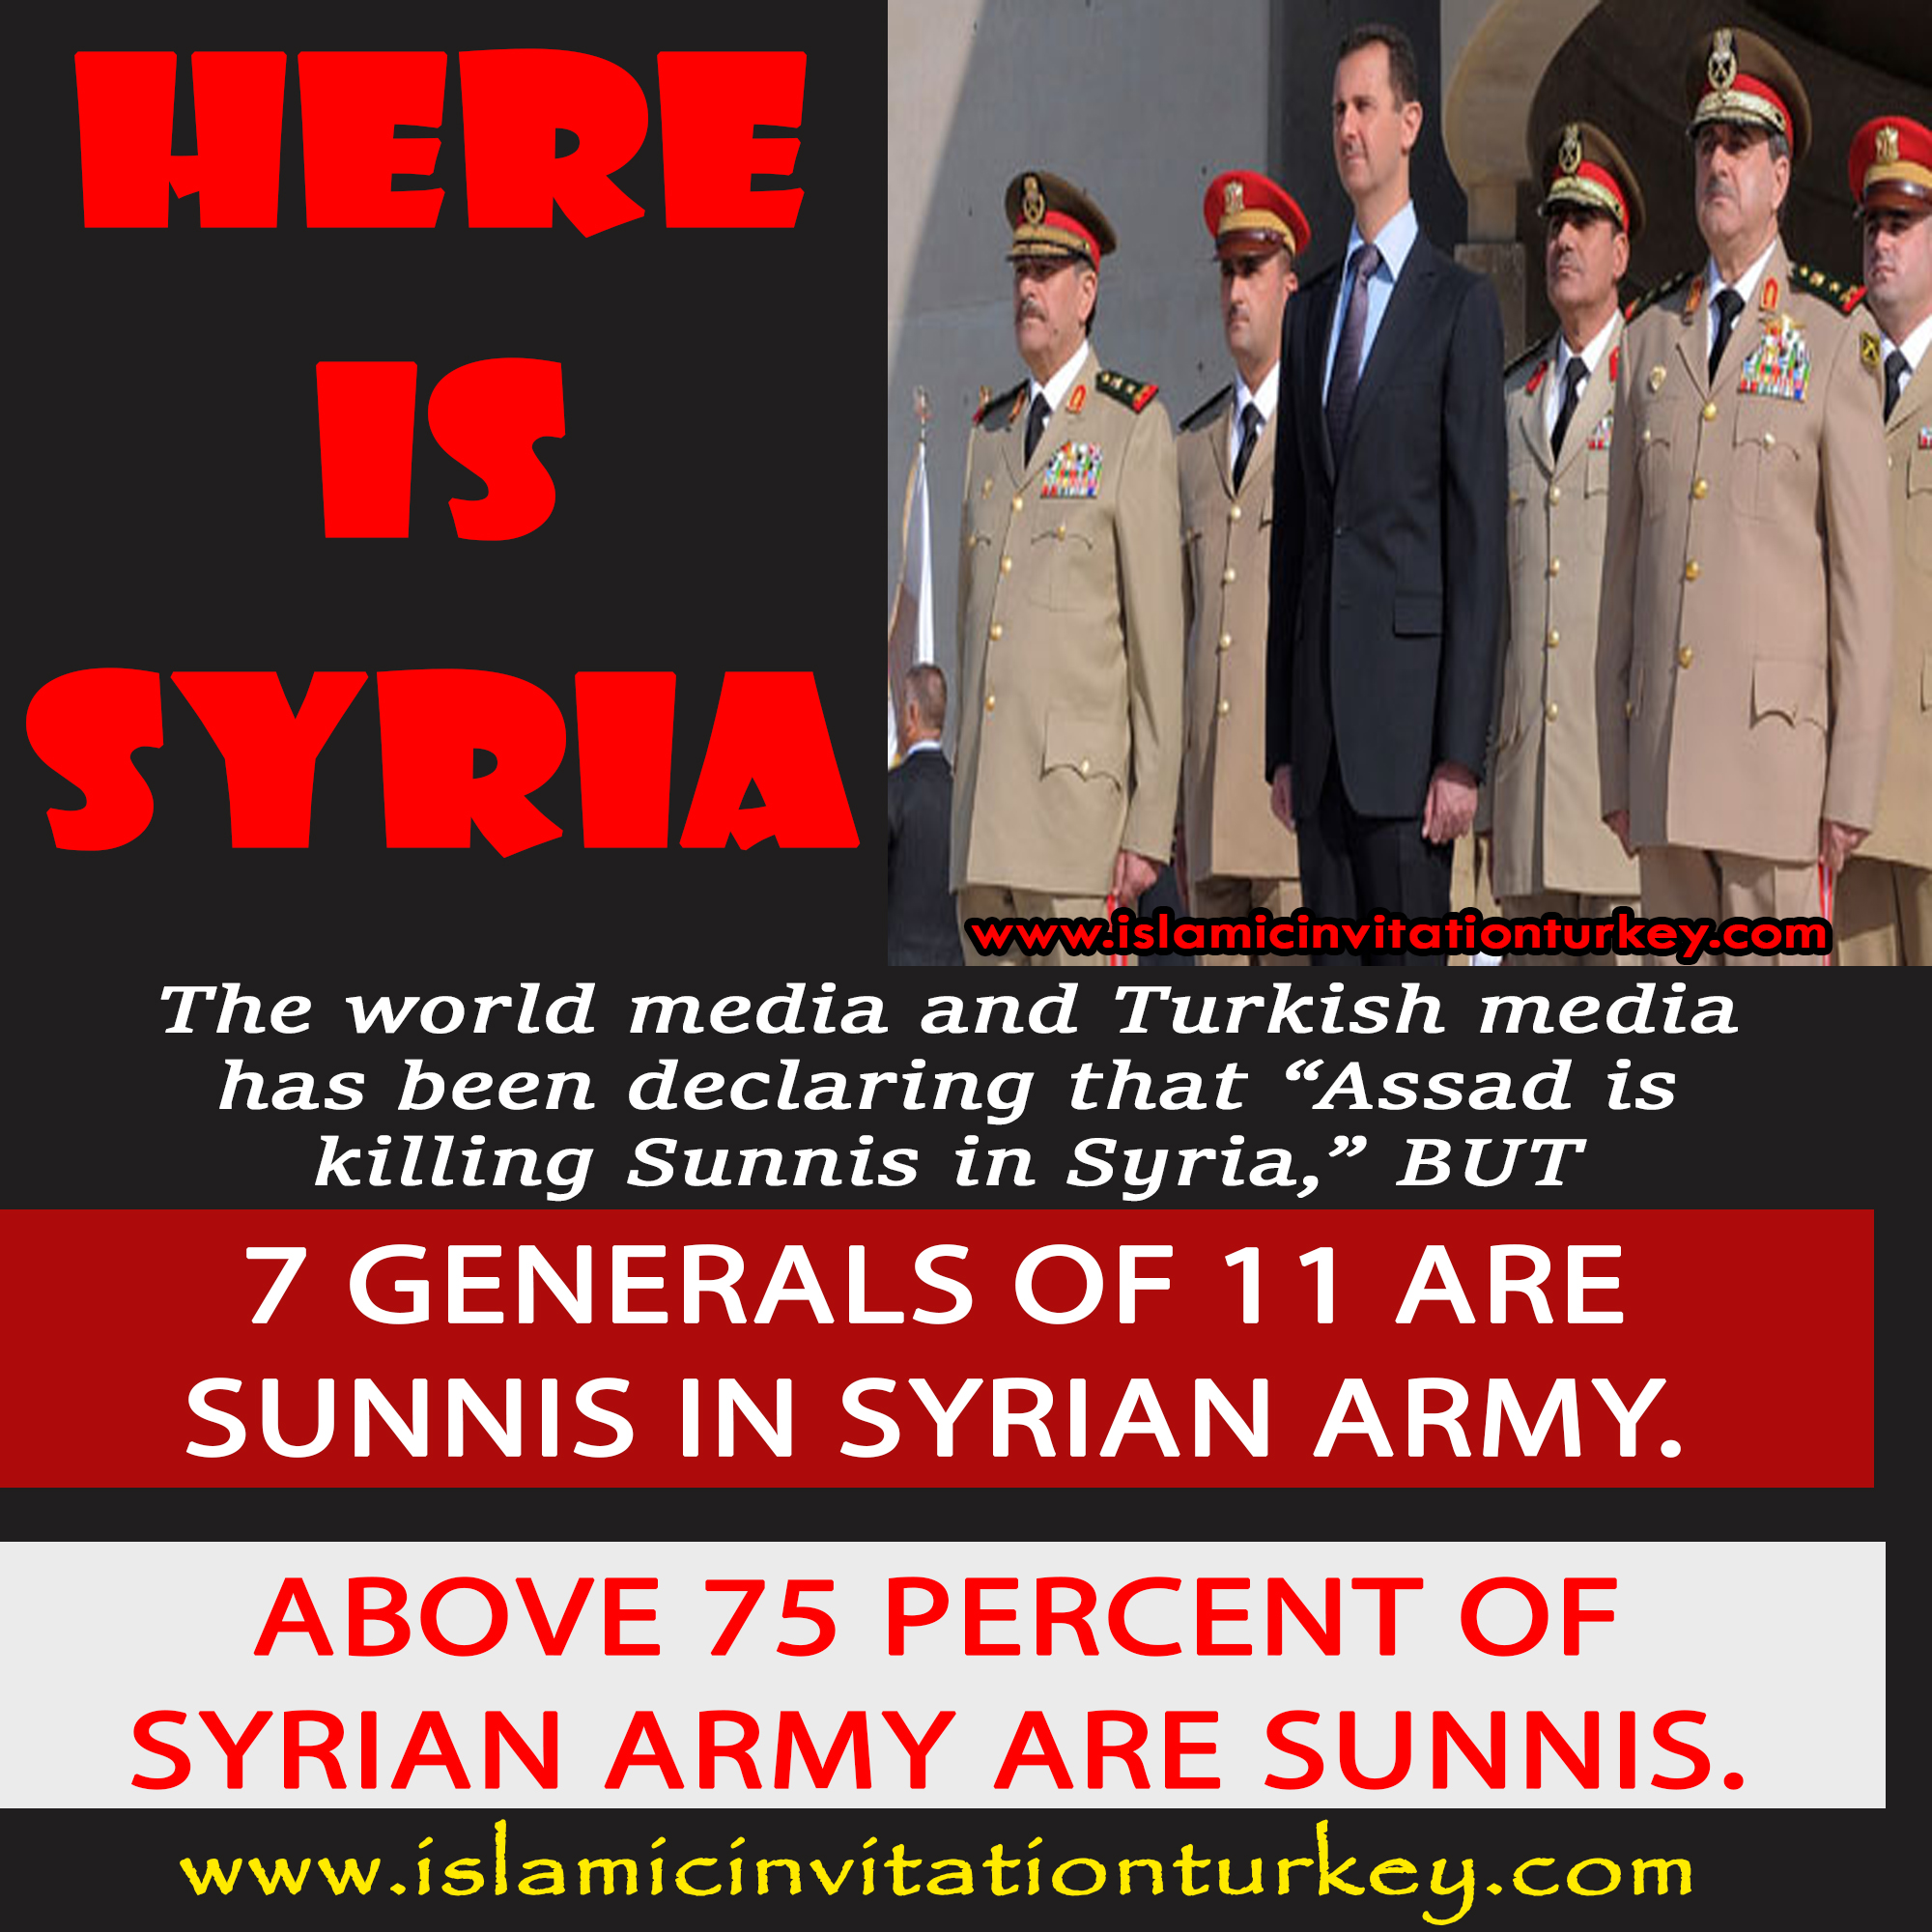 Photo of Is Assad killing Sunnis while 7 of 11 Syrian Generals are Sunnis and above 75 percent of Syrian Army are Sunnis?